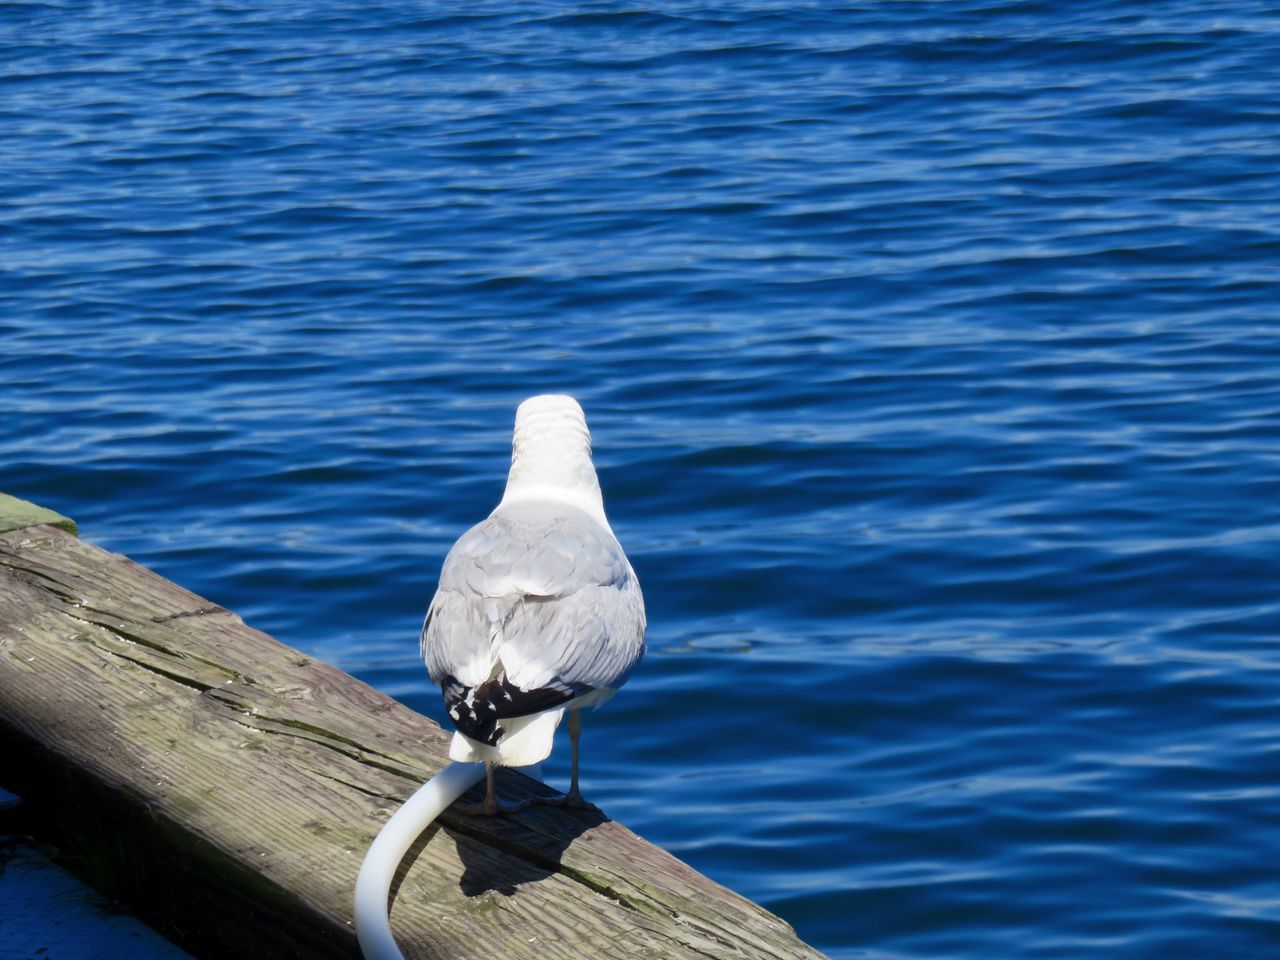 Seagull Looking Out to Sea Sitting on Wood Dockside Back View Beauty In Nature Bird Blue Close-up Day Feather  Focus On Foreground Looking Out To Sea. Nature No People Outdoors Perching Rippled Seagull Tranquil Scene Tranquility Water Waterfront Wildlife Wooden Post A Bird's Eye View